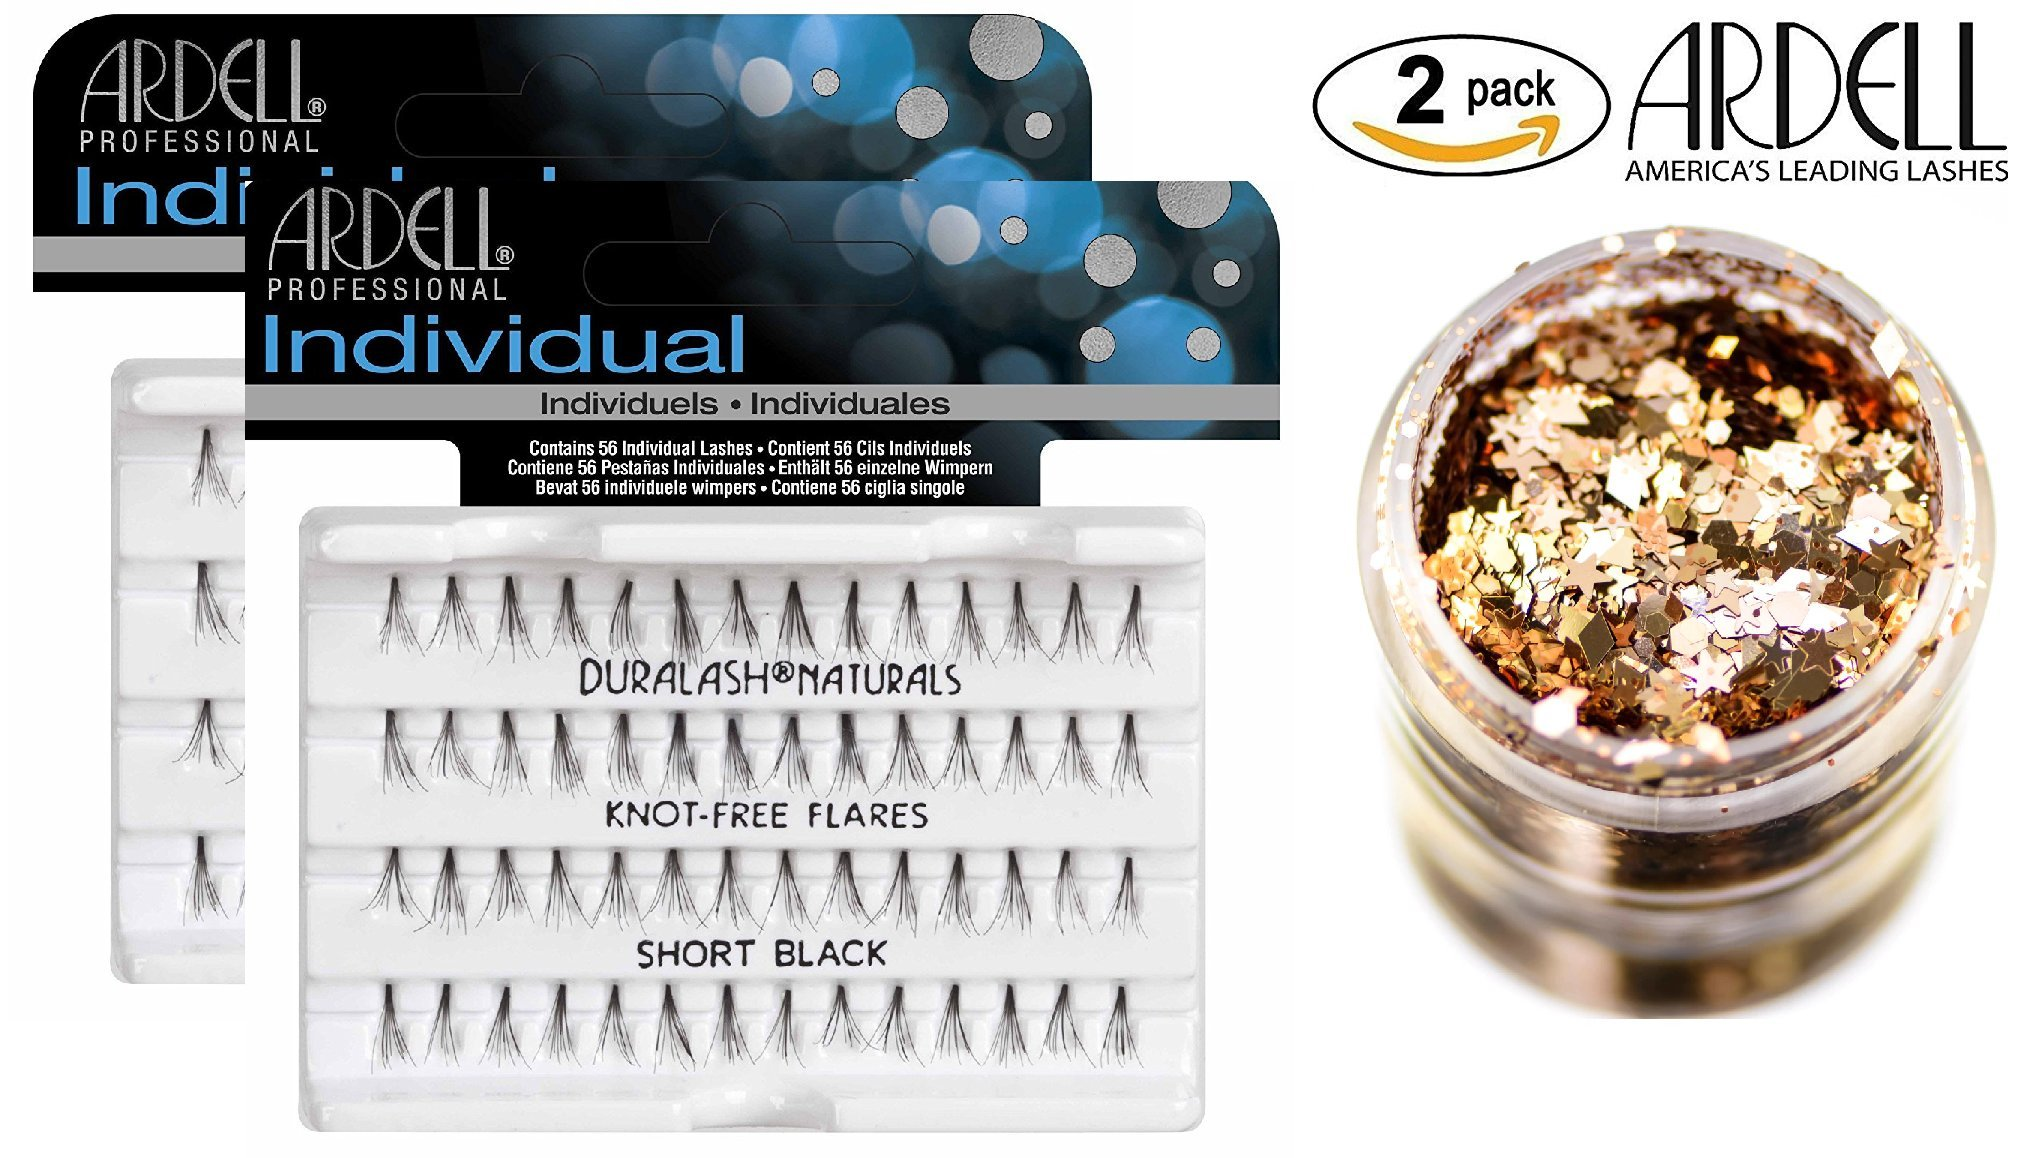 662d209e1ac Get Quotations · Ardell DURALASH INDIVIDUAL NATURALS, Knot-Free Flares,  SHORT BLACK, Contains 56 Individual